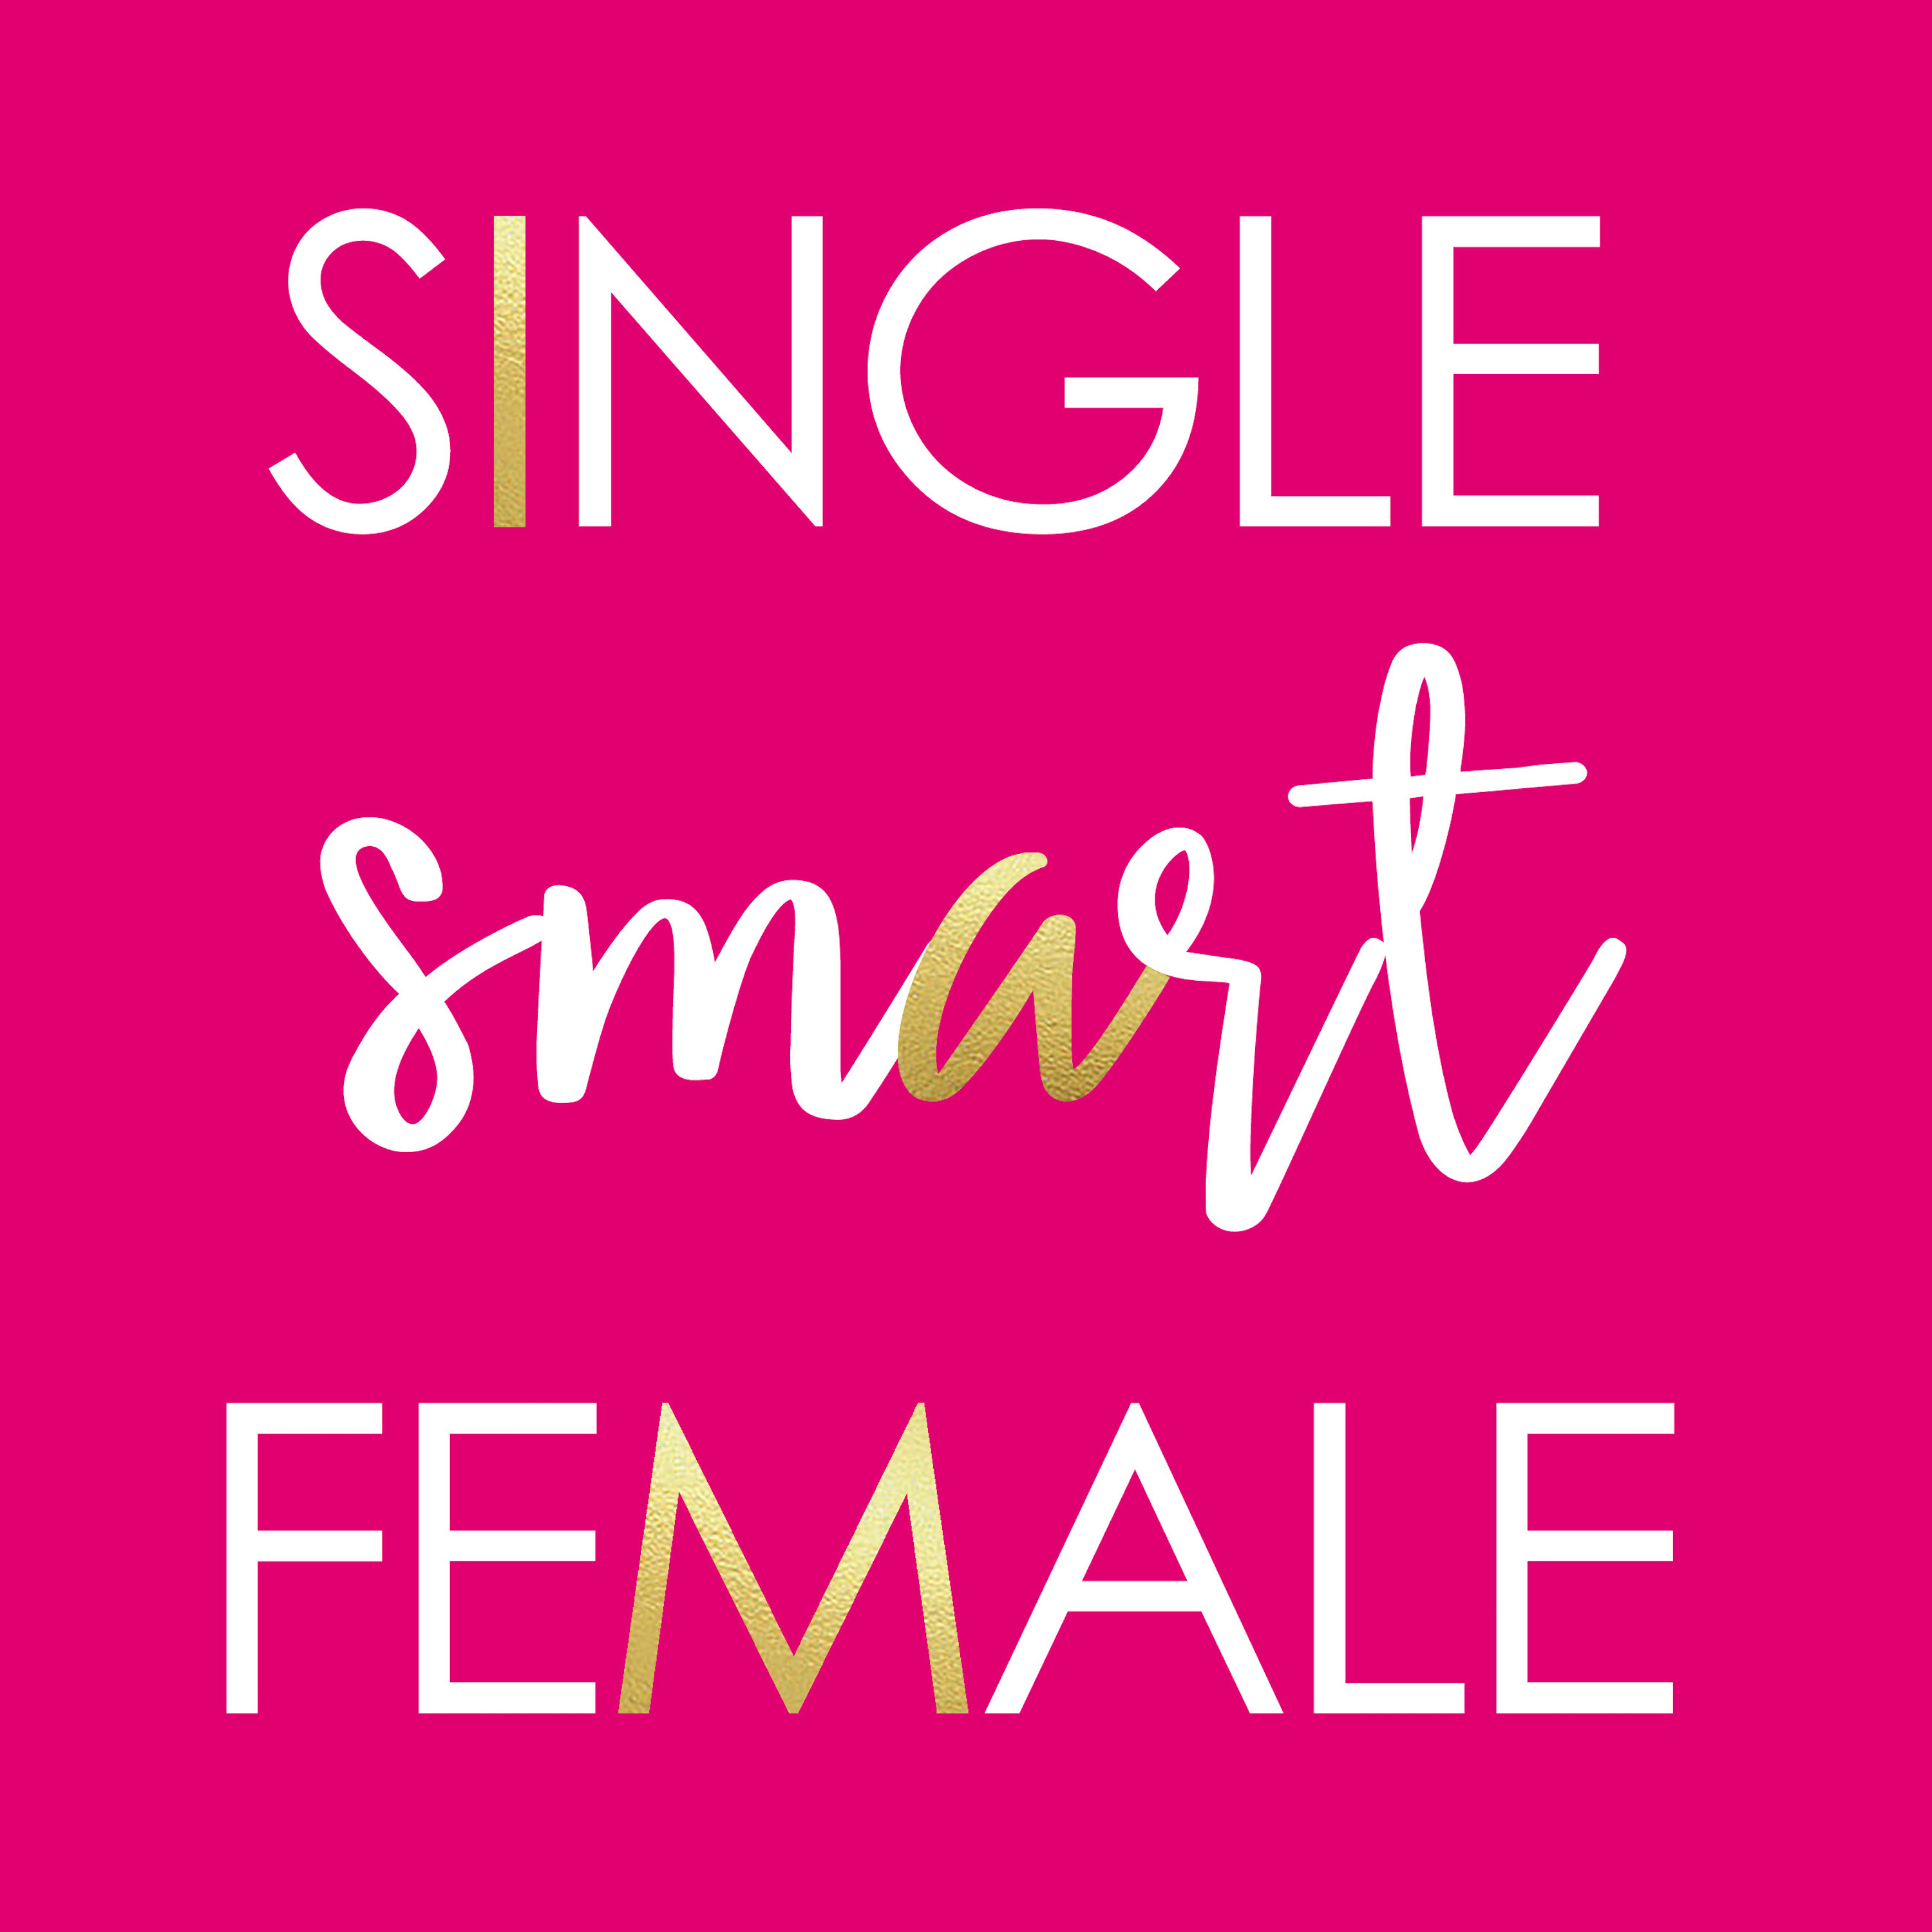 female dating advice Being single it has its perks and pits being able to do whatever you want is a  plus, but wanting snuggles and having no one to snuggle with.